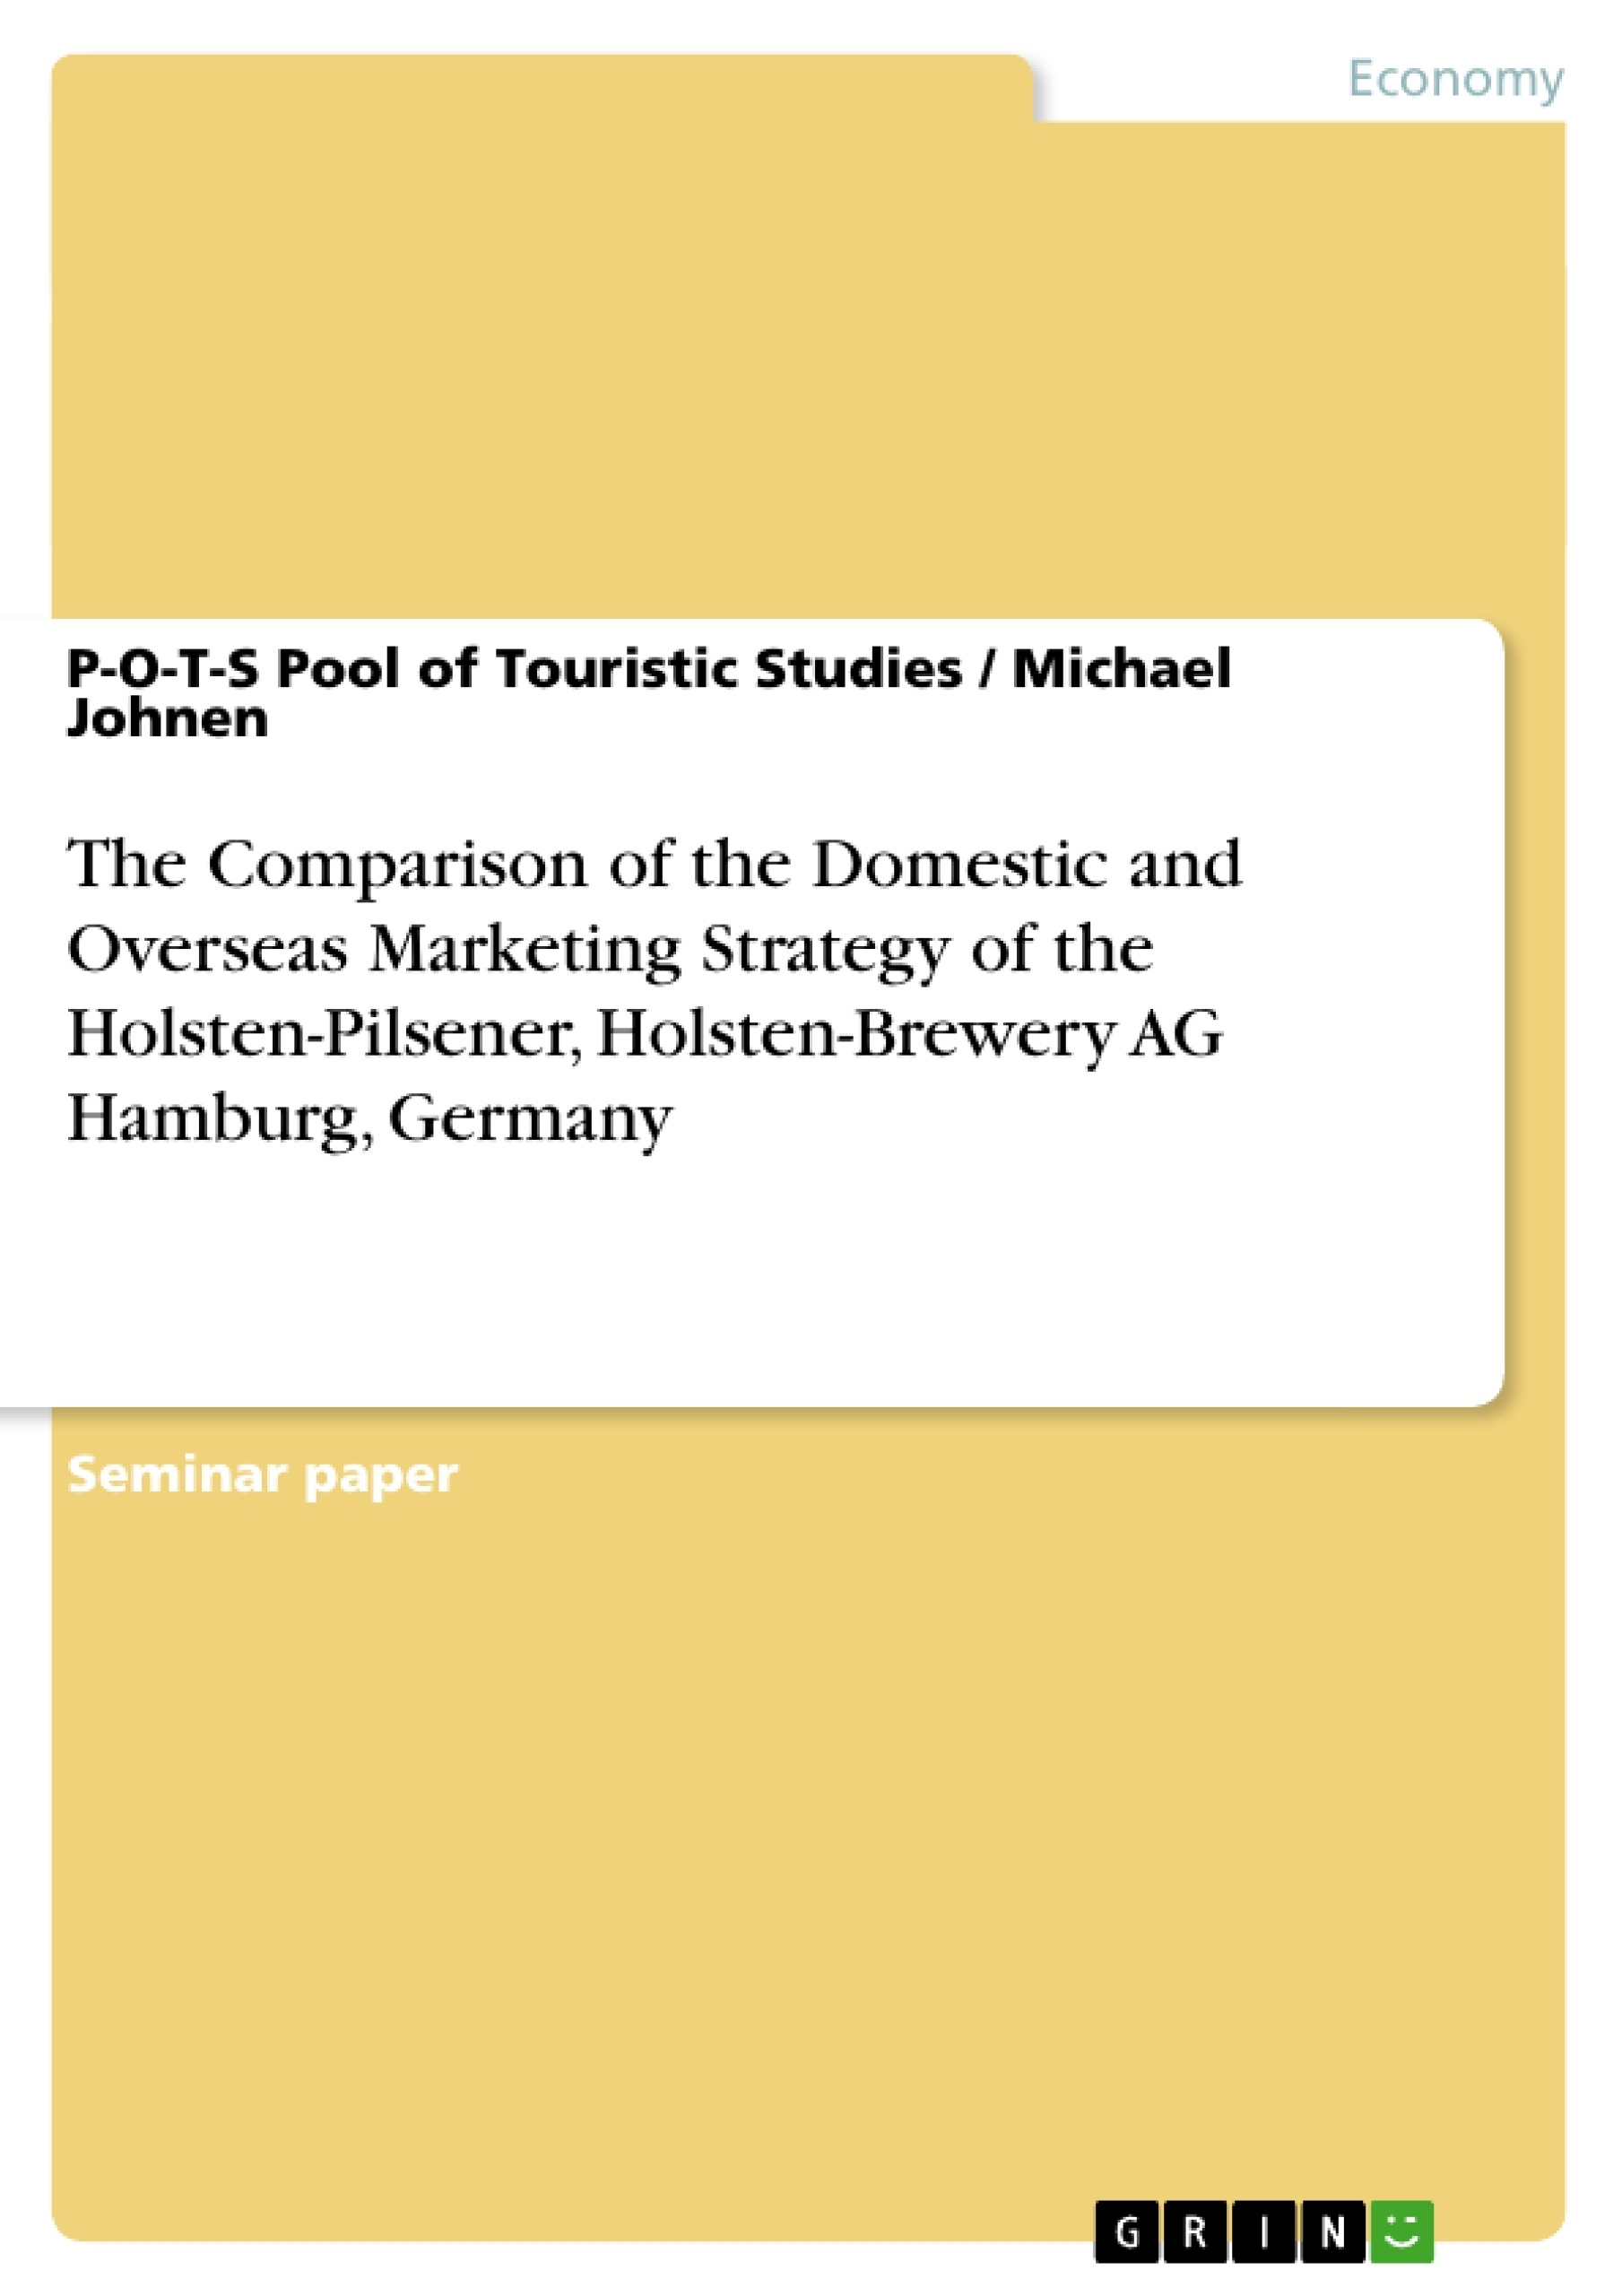 Title: The Comparison of the Domestic and Overseas Marketing Strategy of the Holsten-Pilsener, Holsten-Brewery AG Hamburg, Germany